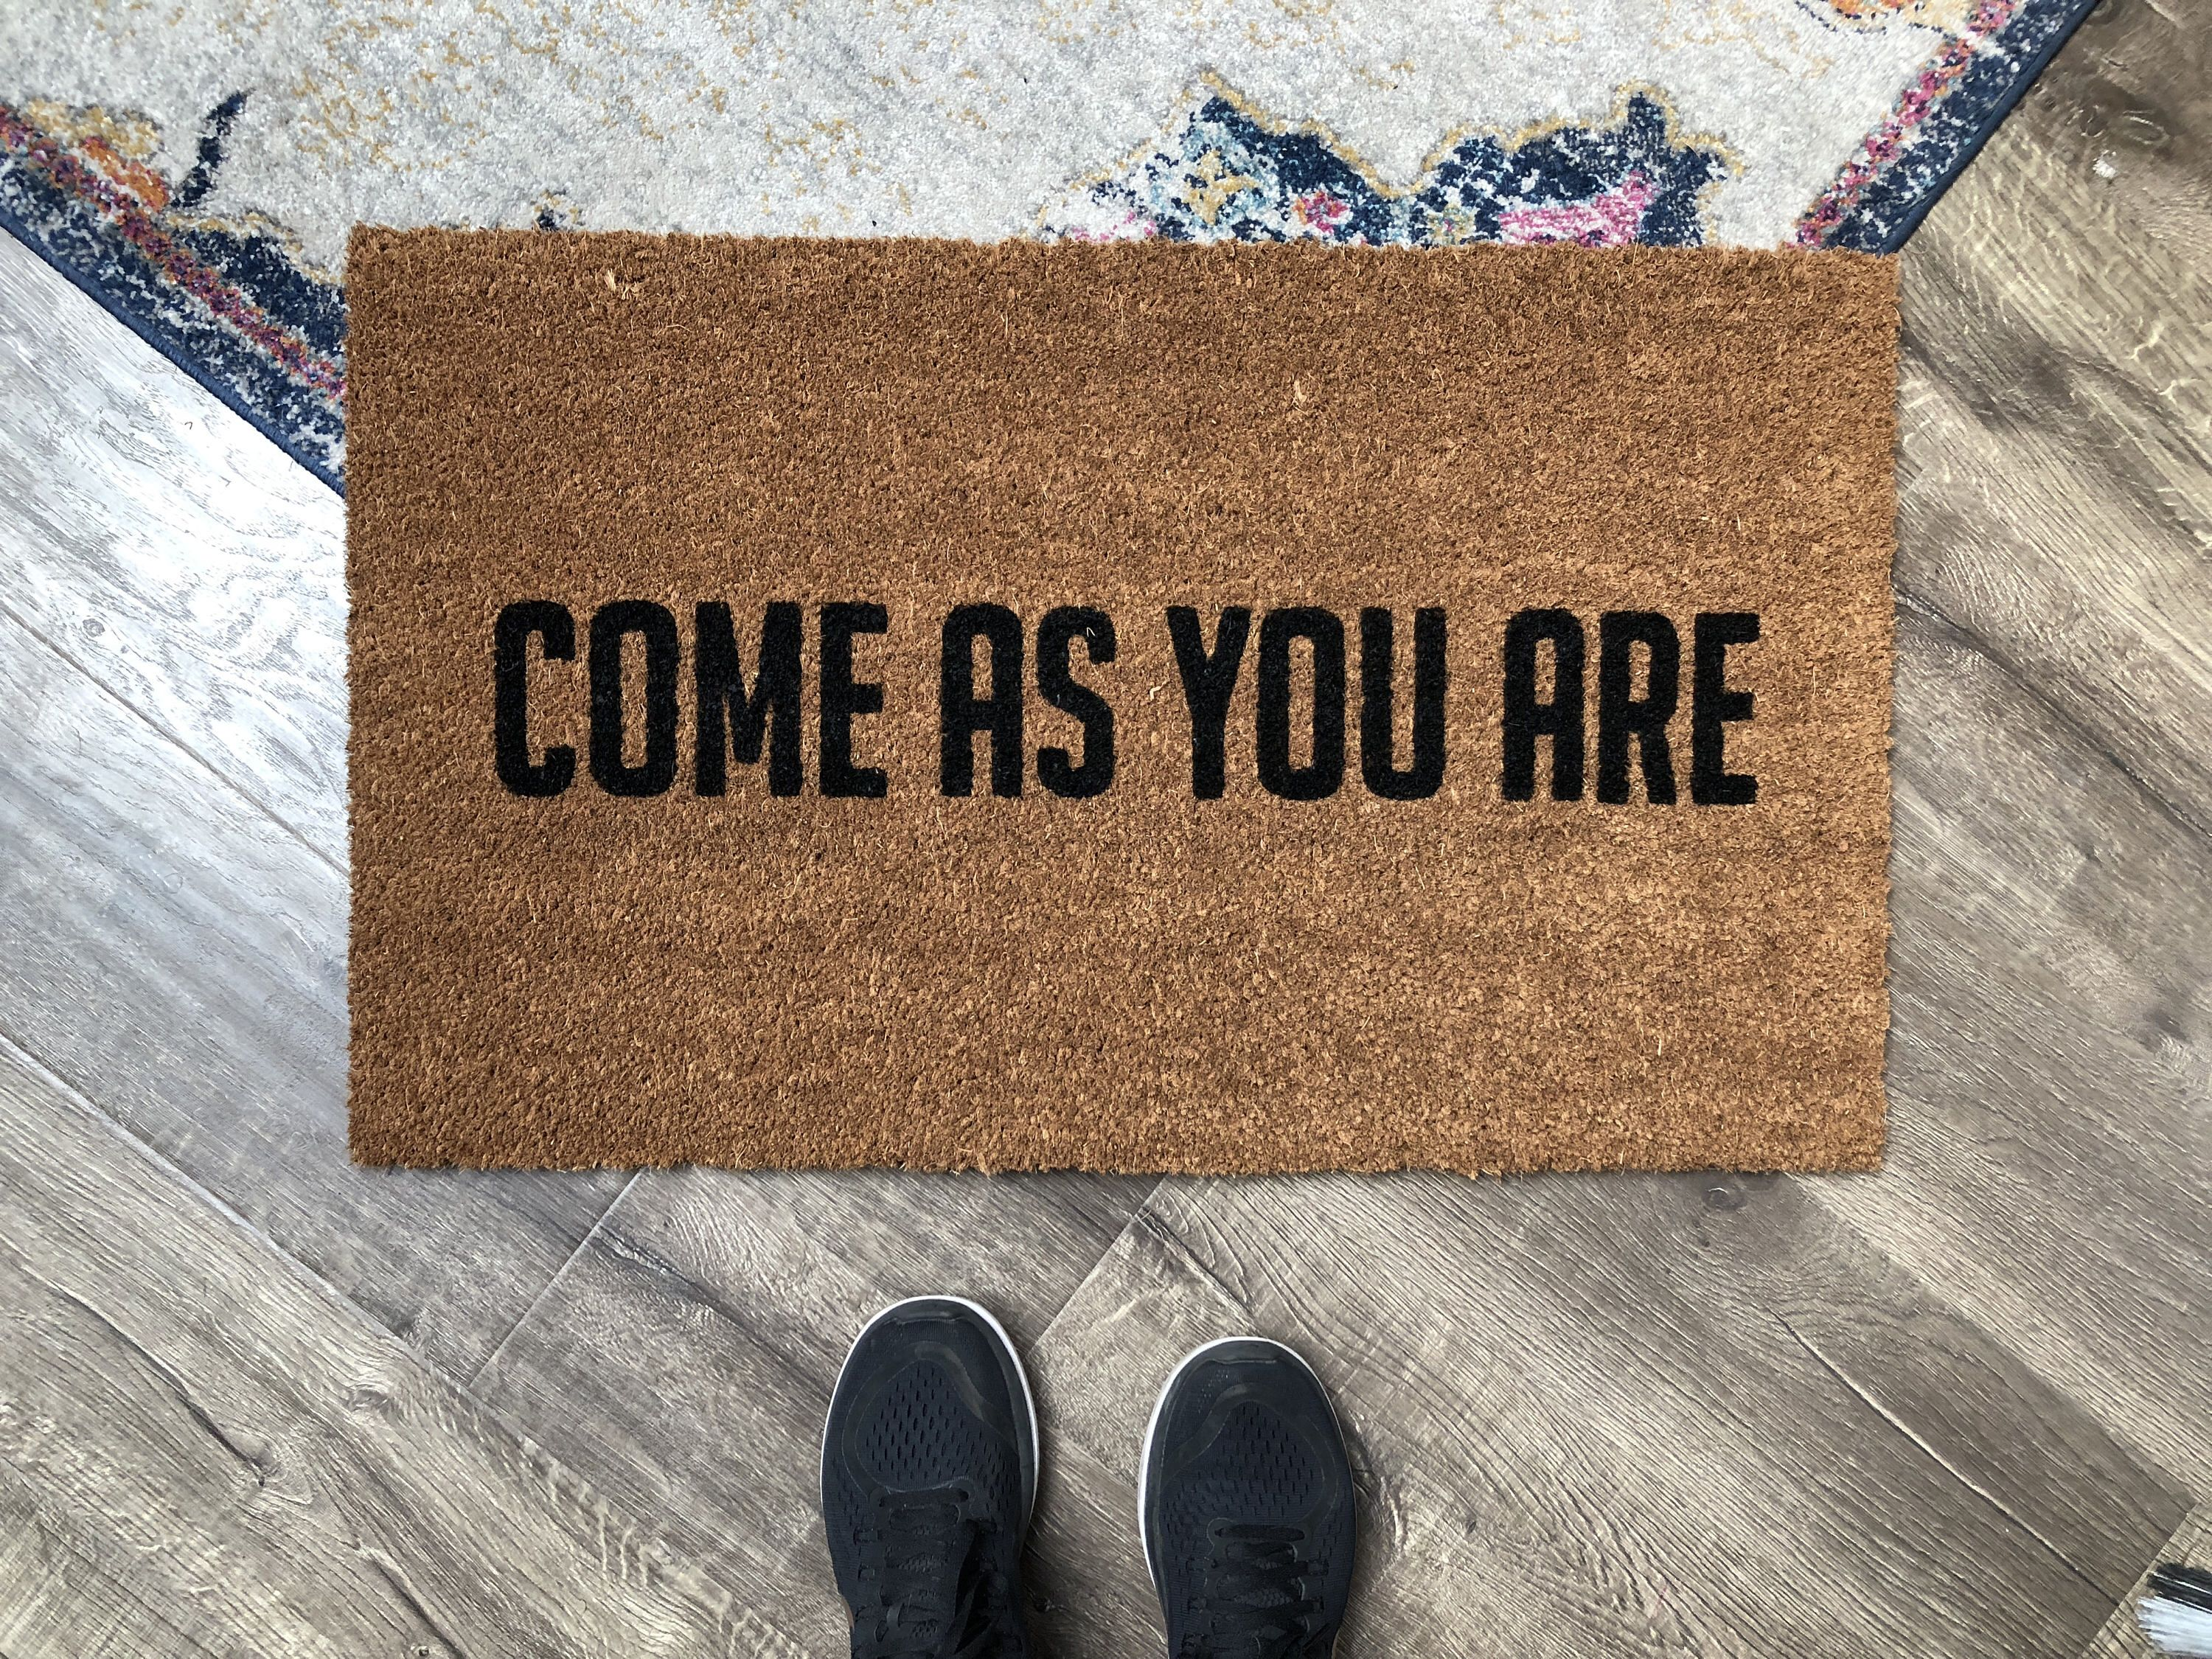 ing custom your wipe ny decorating relaxing mats daze ideas paws doormat funny cheerful enormous holiday welcome robust home door lummy doormats zq